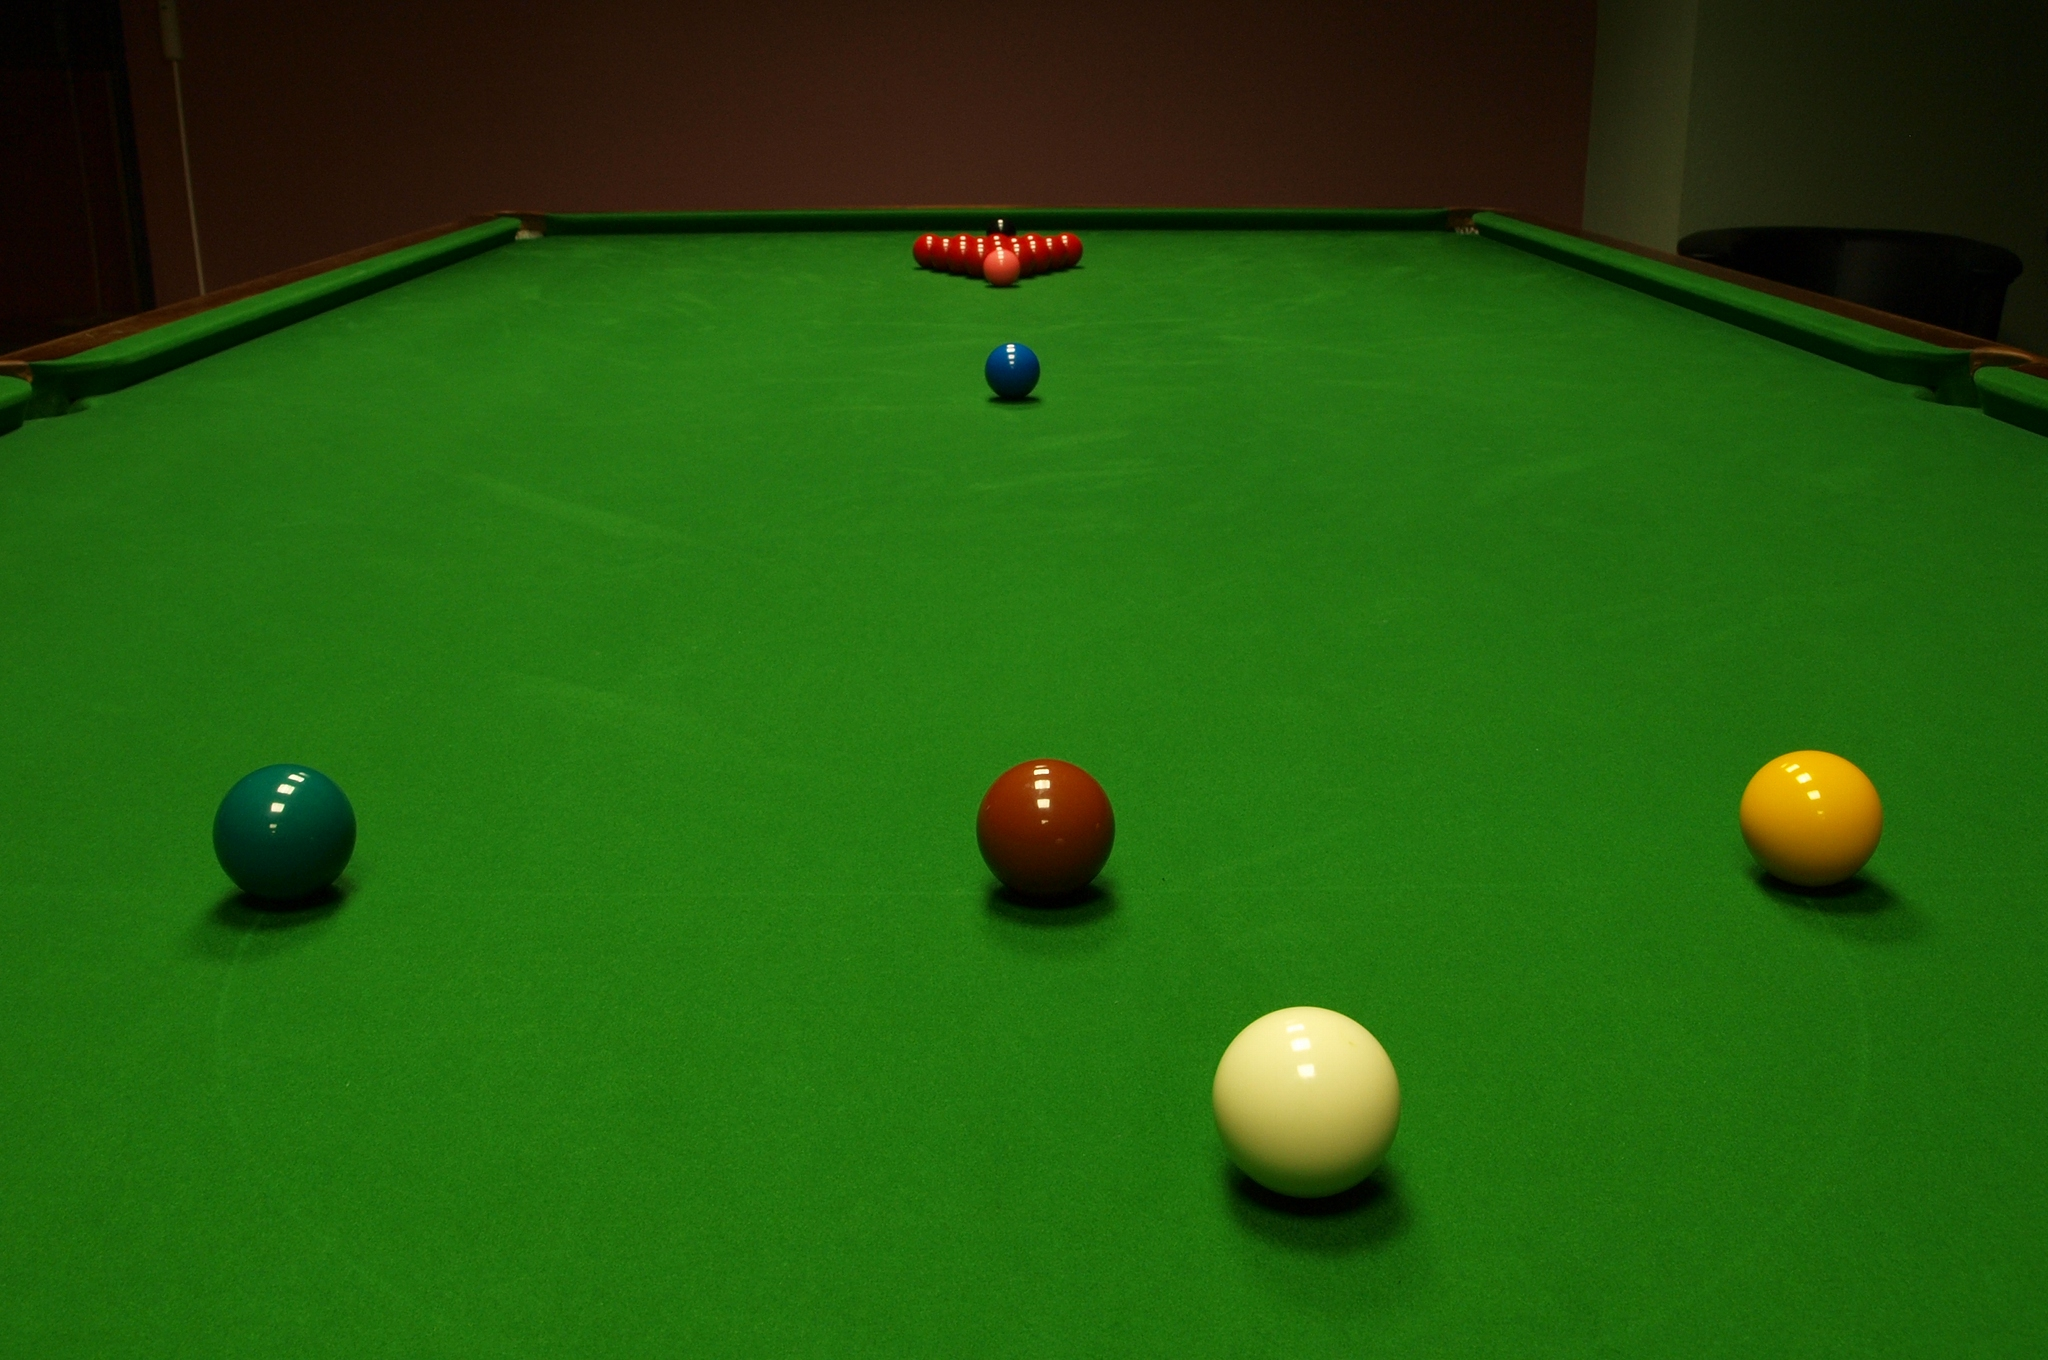 How To Get Into Snooker - ClickHowTo